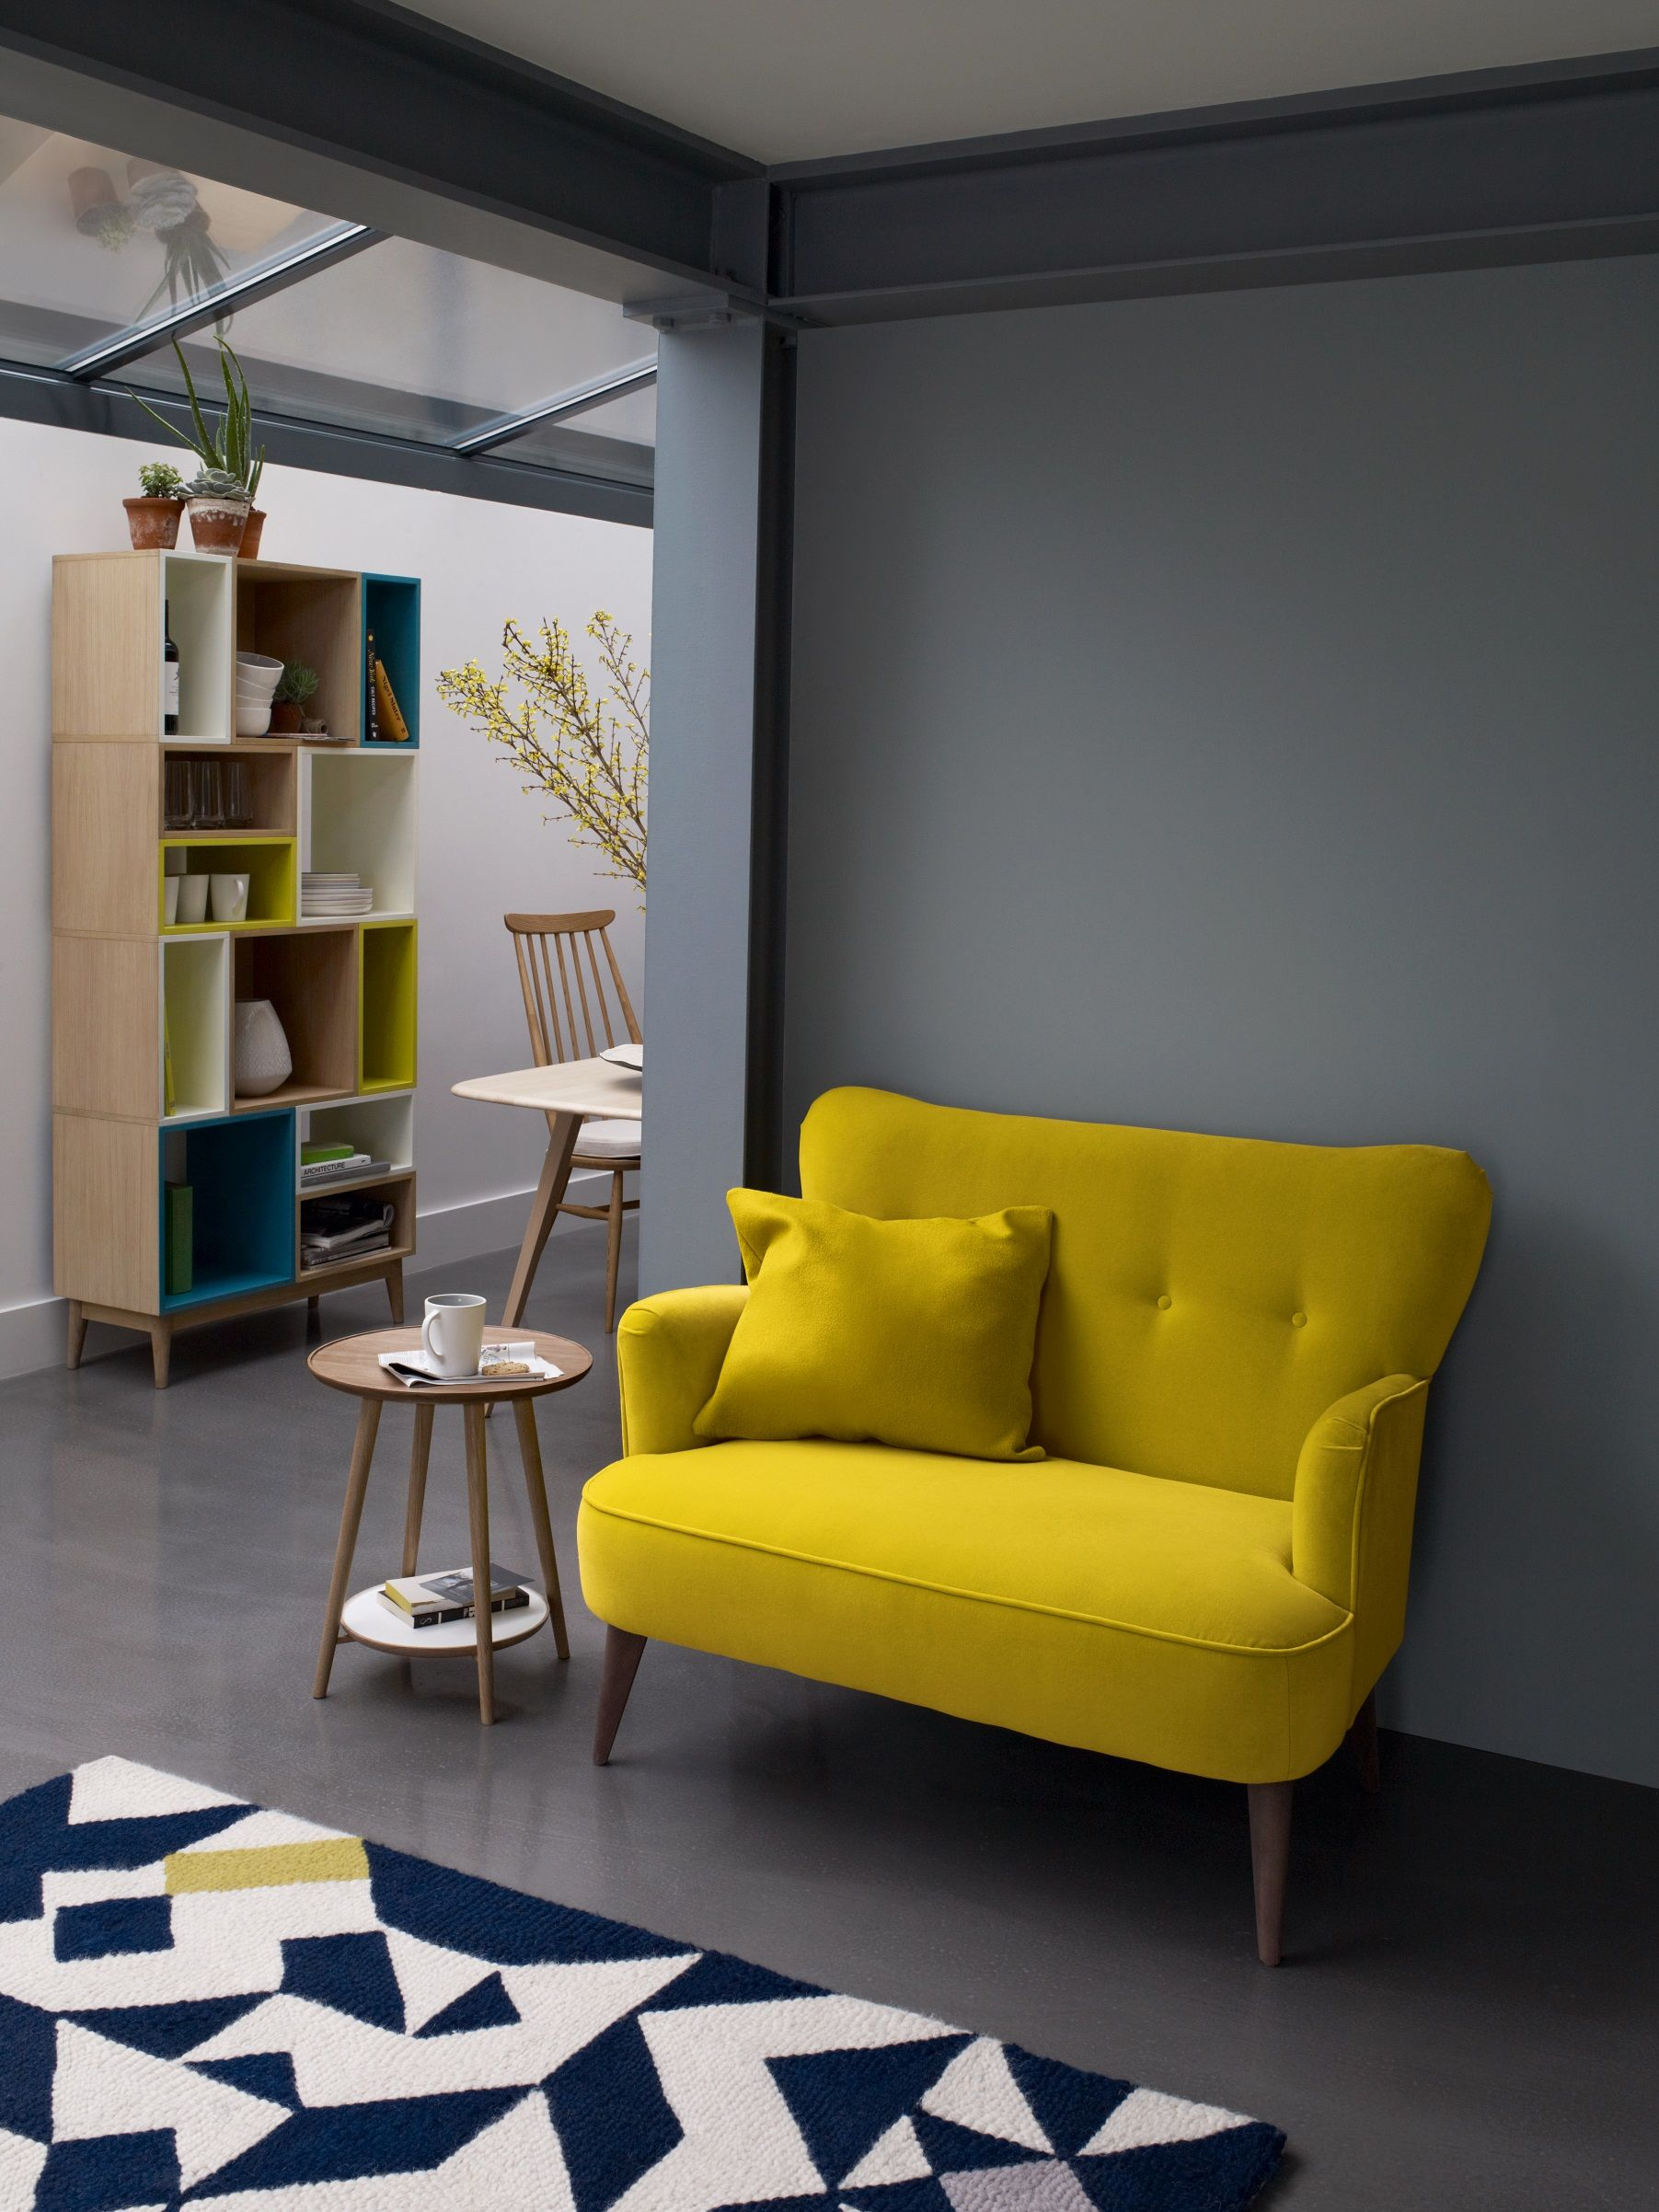 Room changers the key pieces that can transform any looking for  statement chair our bedroom yellow and grey also rh nz pinterest